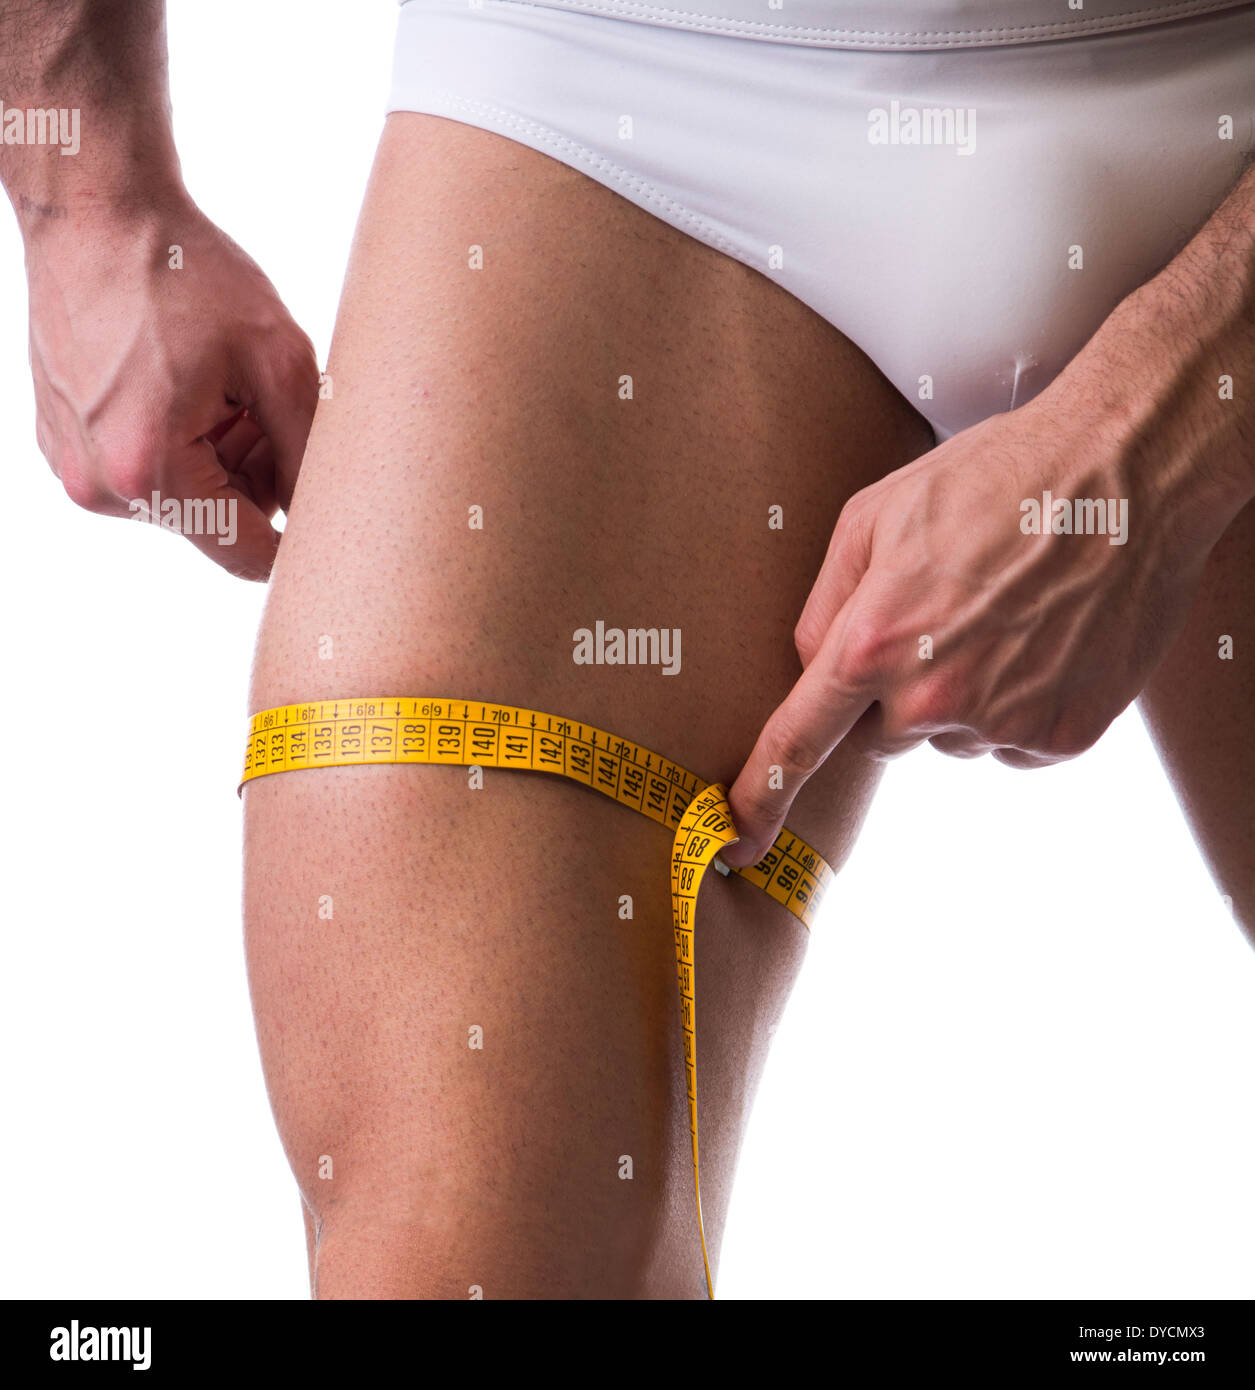 Muscular young man measuring thigh with tape measure, close-up of leg on white background - Stock Image